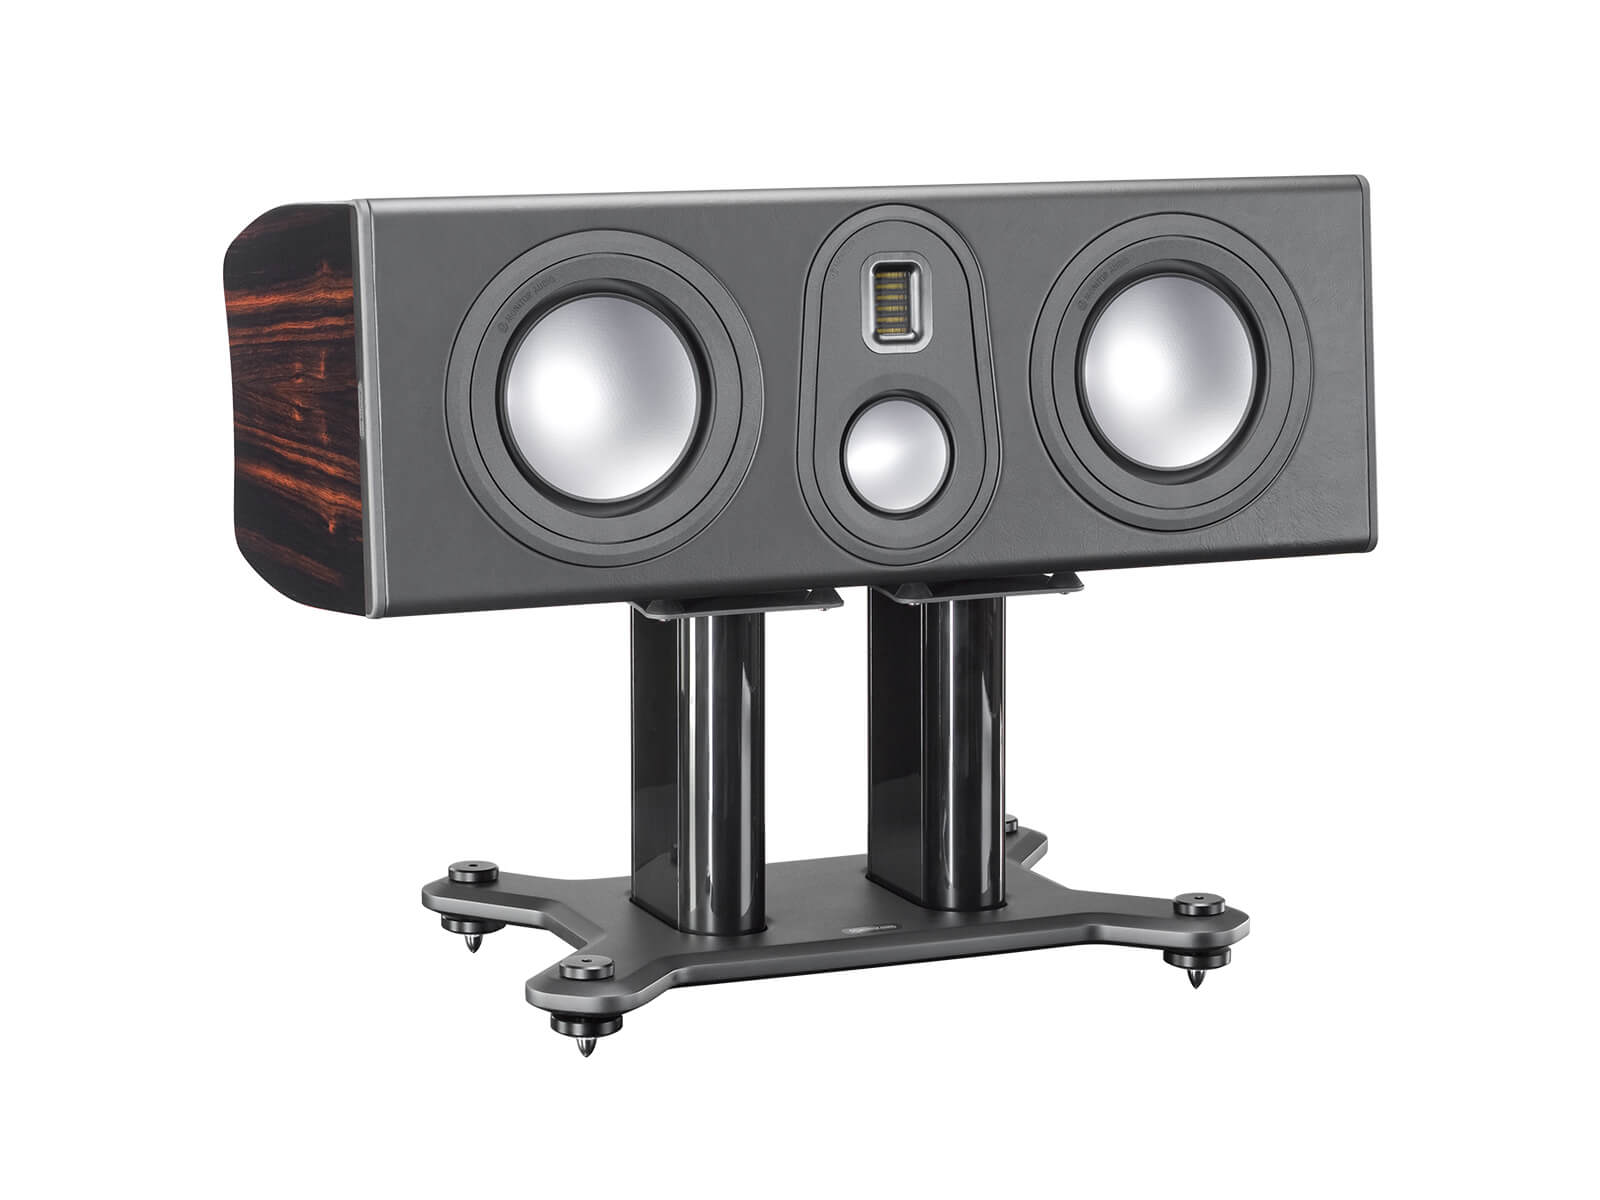 Platinum PLC350 II, grille-less centre channel speakers, with a piano black lacquer finish.